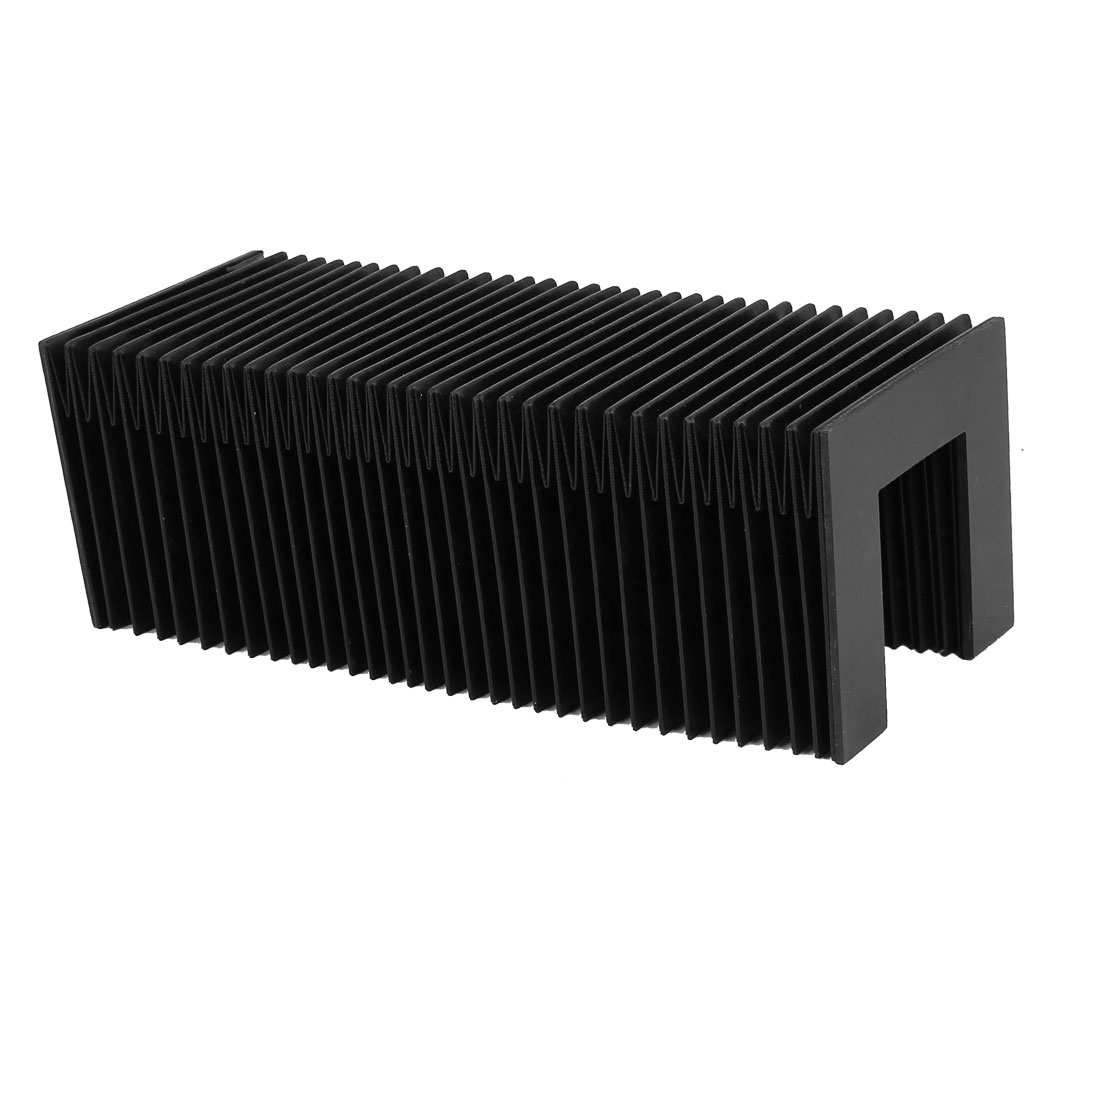 Synthetic Rubber Flexible Folded Protective Accordion Dust Cover Black 80mmx75mm